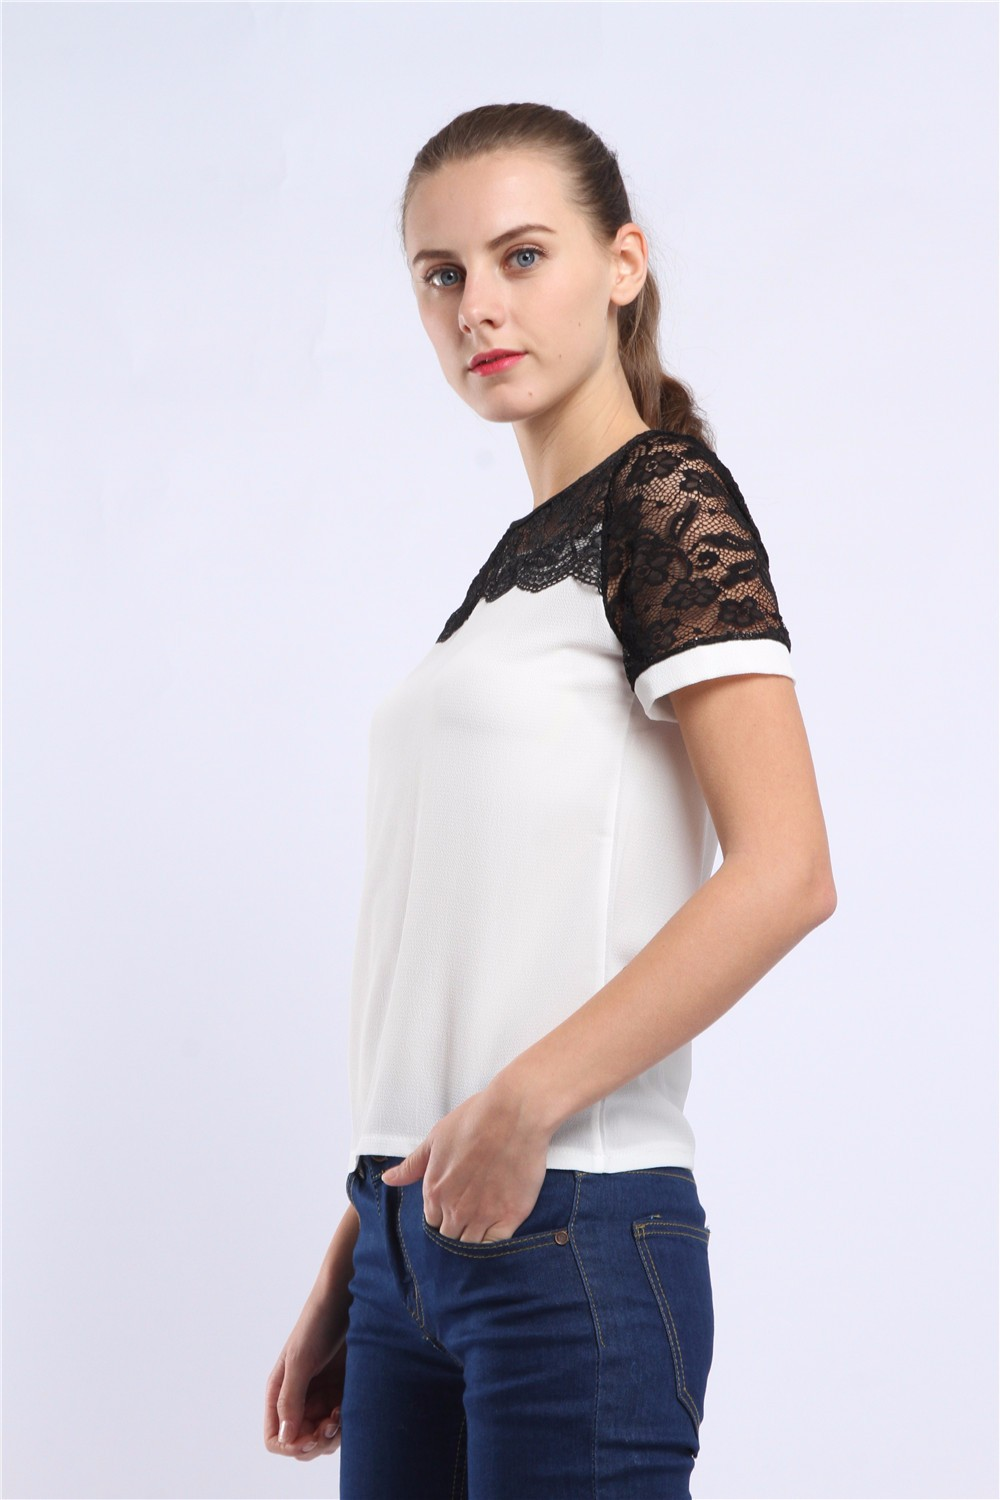 Women Blouses Summer Lace Chiffon Blouse Casual Blusa Feminina Tops Fashion Chemise Femme Shirts Plus Size 5XL Red White Pink 43